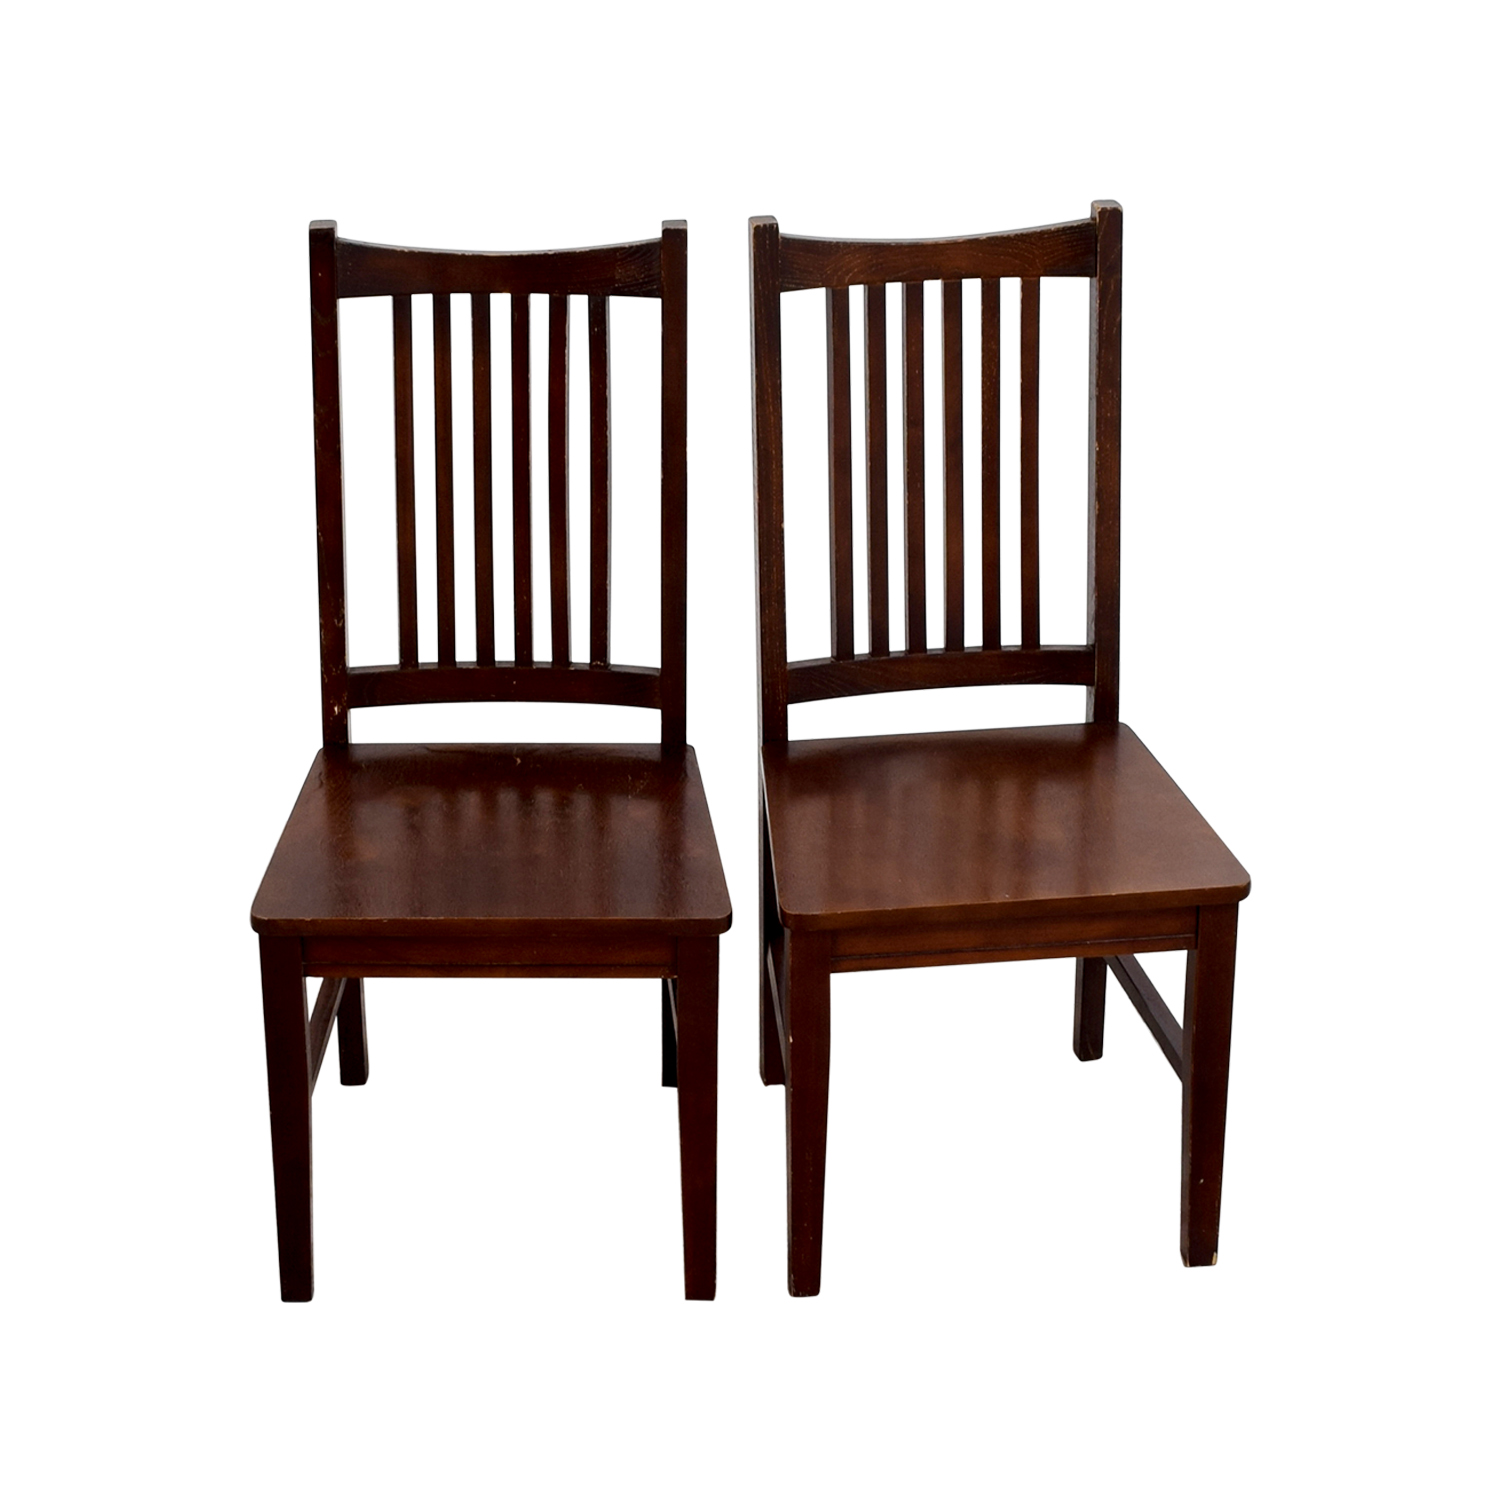 wood hand chair office tilt mechanism 55 off classic solid chairs